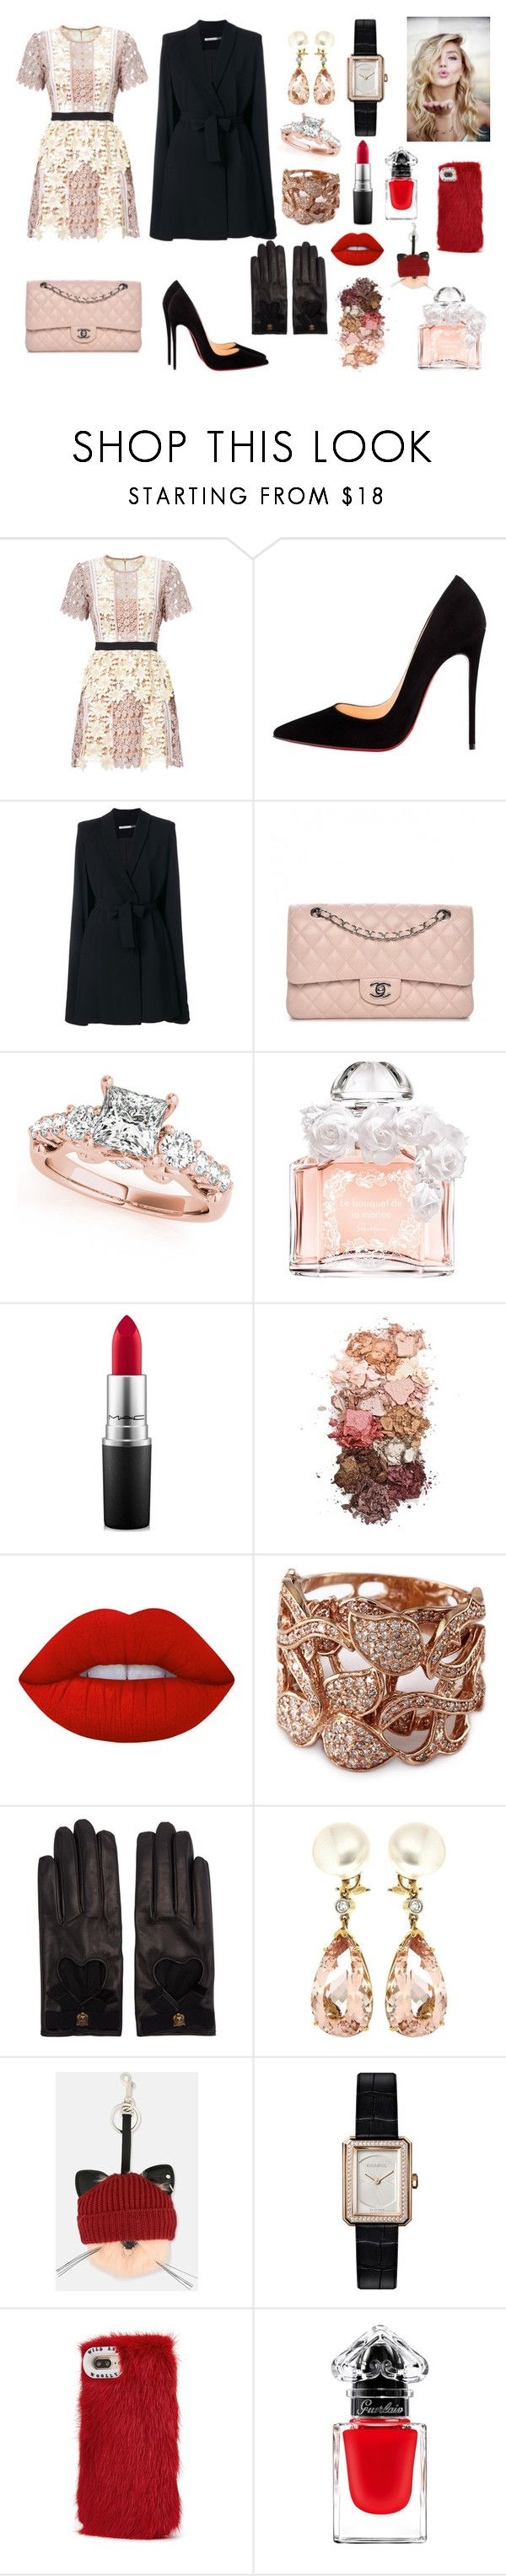 """""""Sans titre #46"""" by sheimabidi on Polyvore featuring mode, Christian Louboutin, Alice + Olivia, Chanel, Guerlain, MAC Cosmetics, Sigma, Lime Crime, Effy Jewelry et Gucci"""